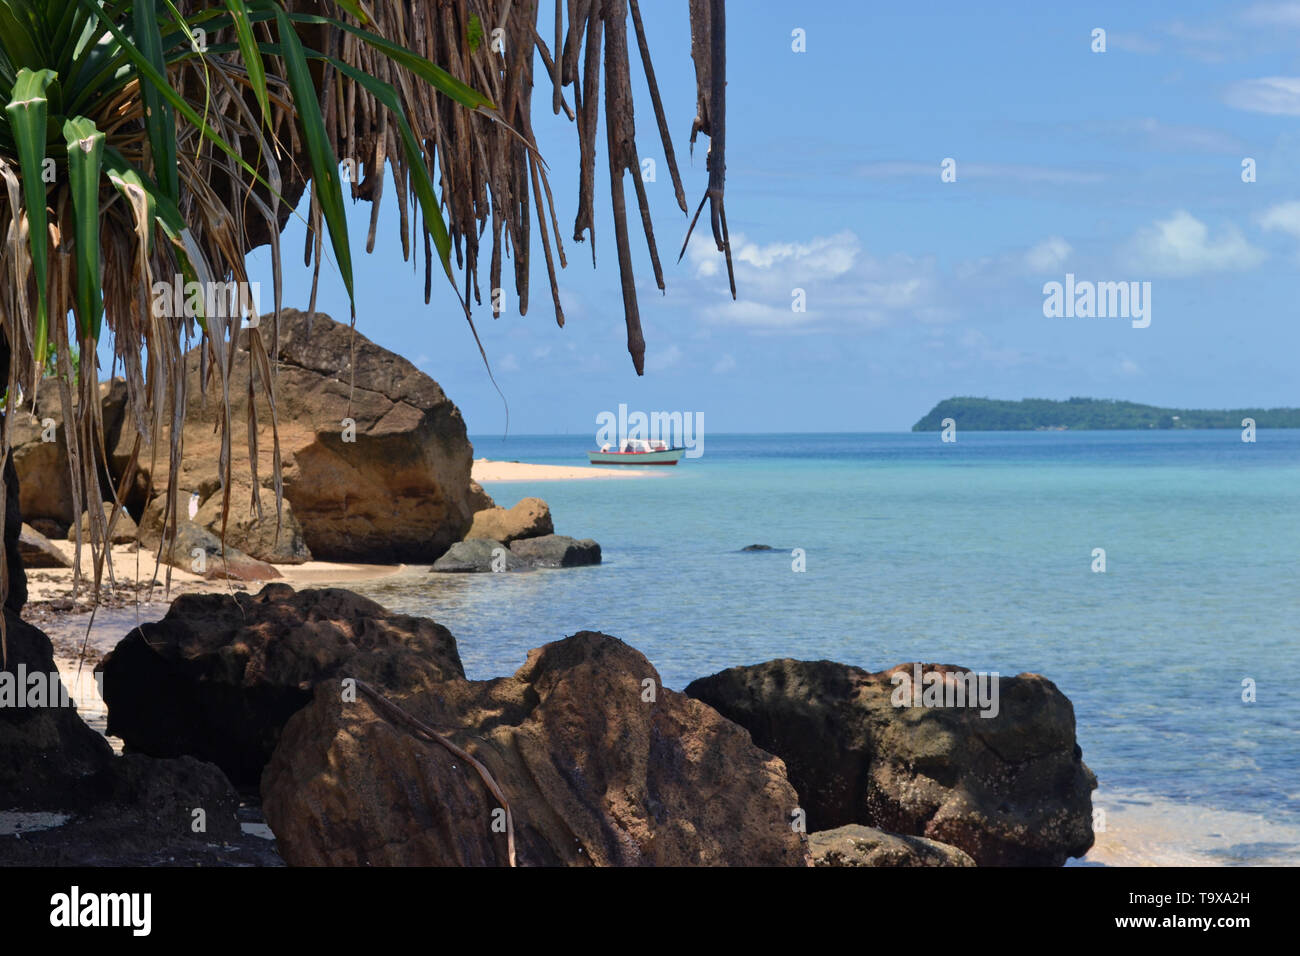 Boat and rocks on a beach in the Nukuatea motu, Wallis Island, Wallis & Futuna, South Pacific - Stock Image